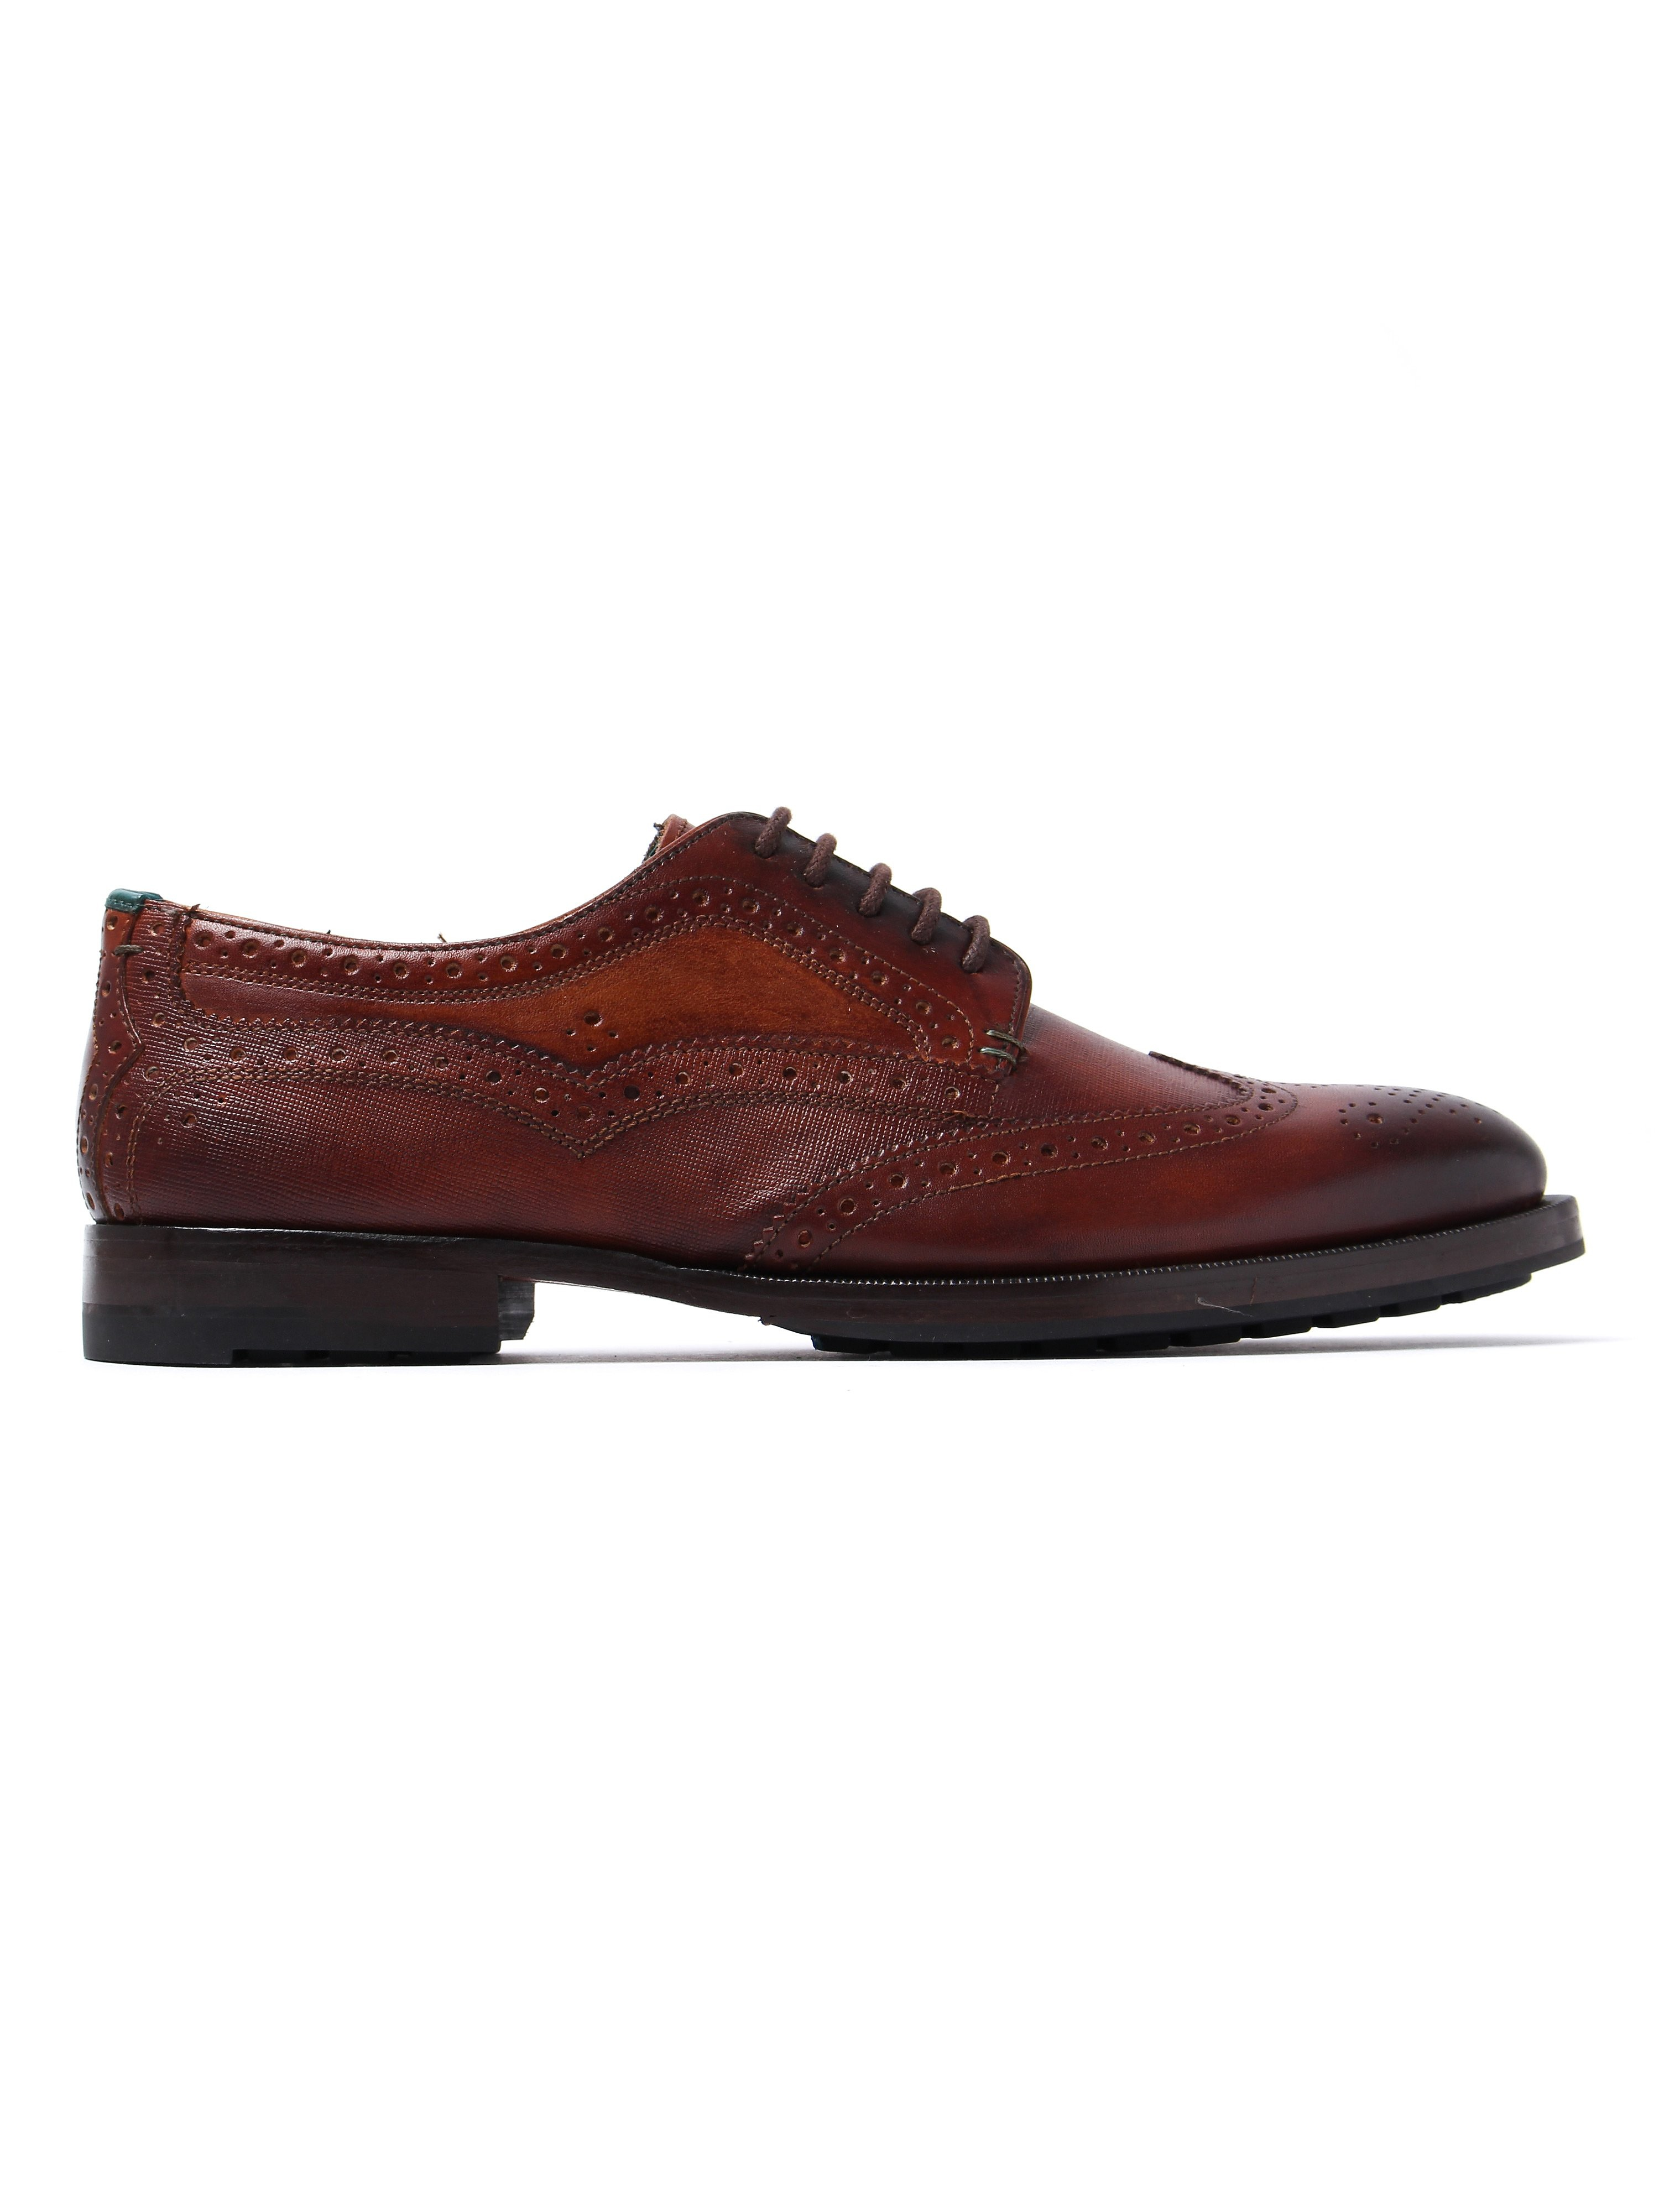 Ted Baker Men's Senape Oxford Brogues - Tan Leather